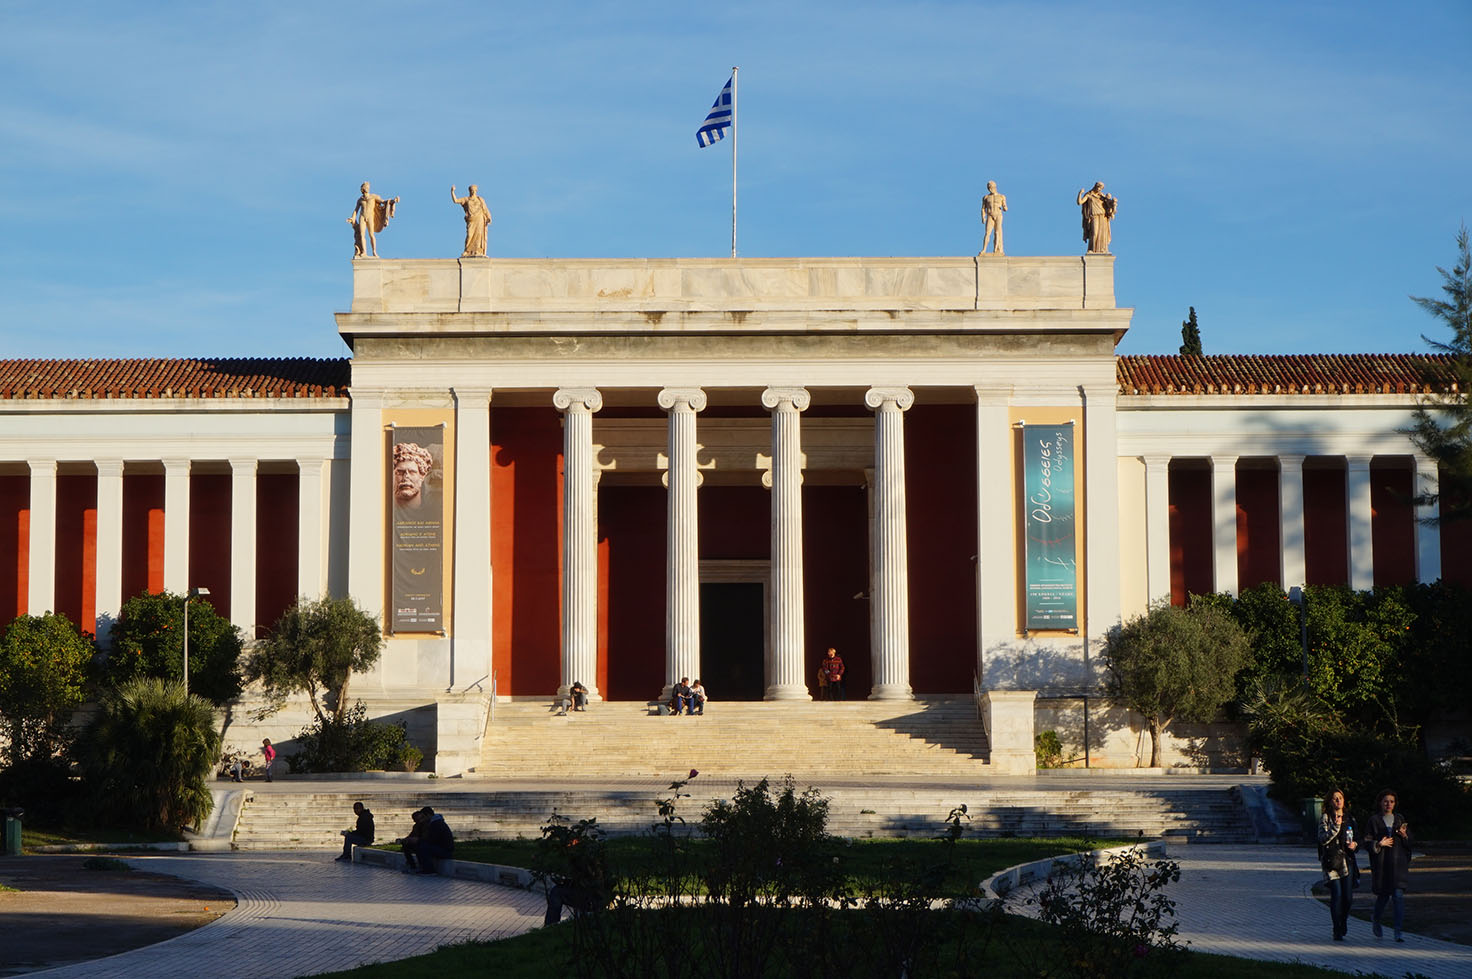 Archeological Museum of Athens - neoclassical architecture